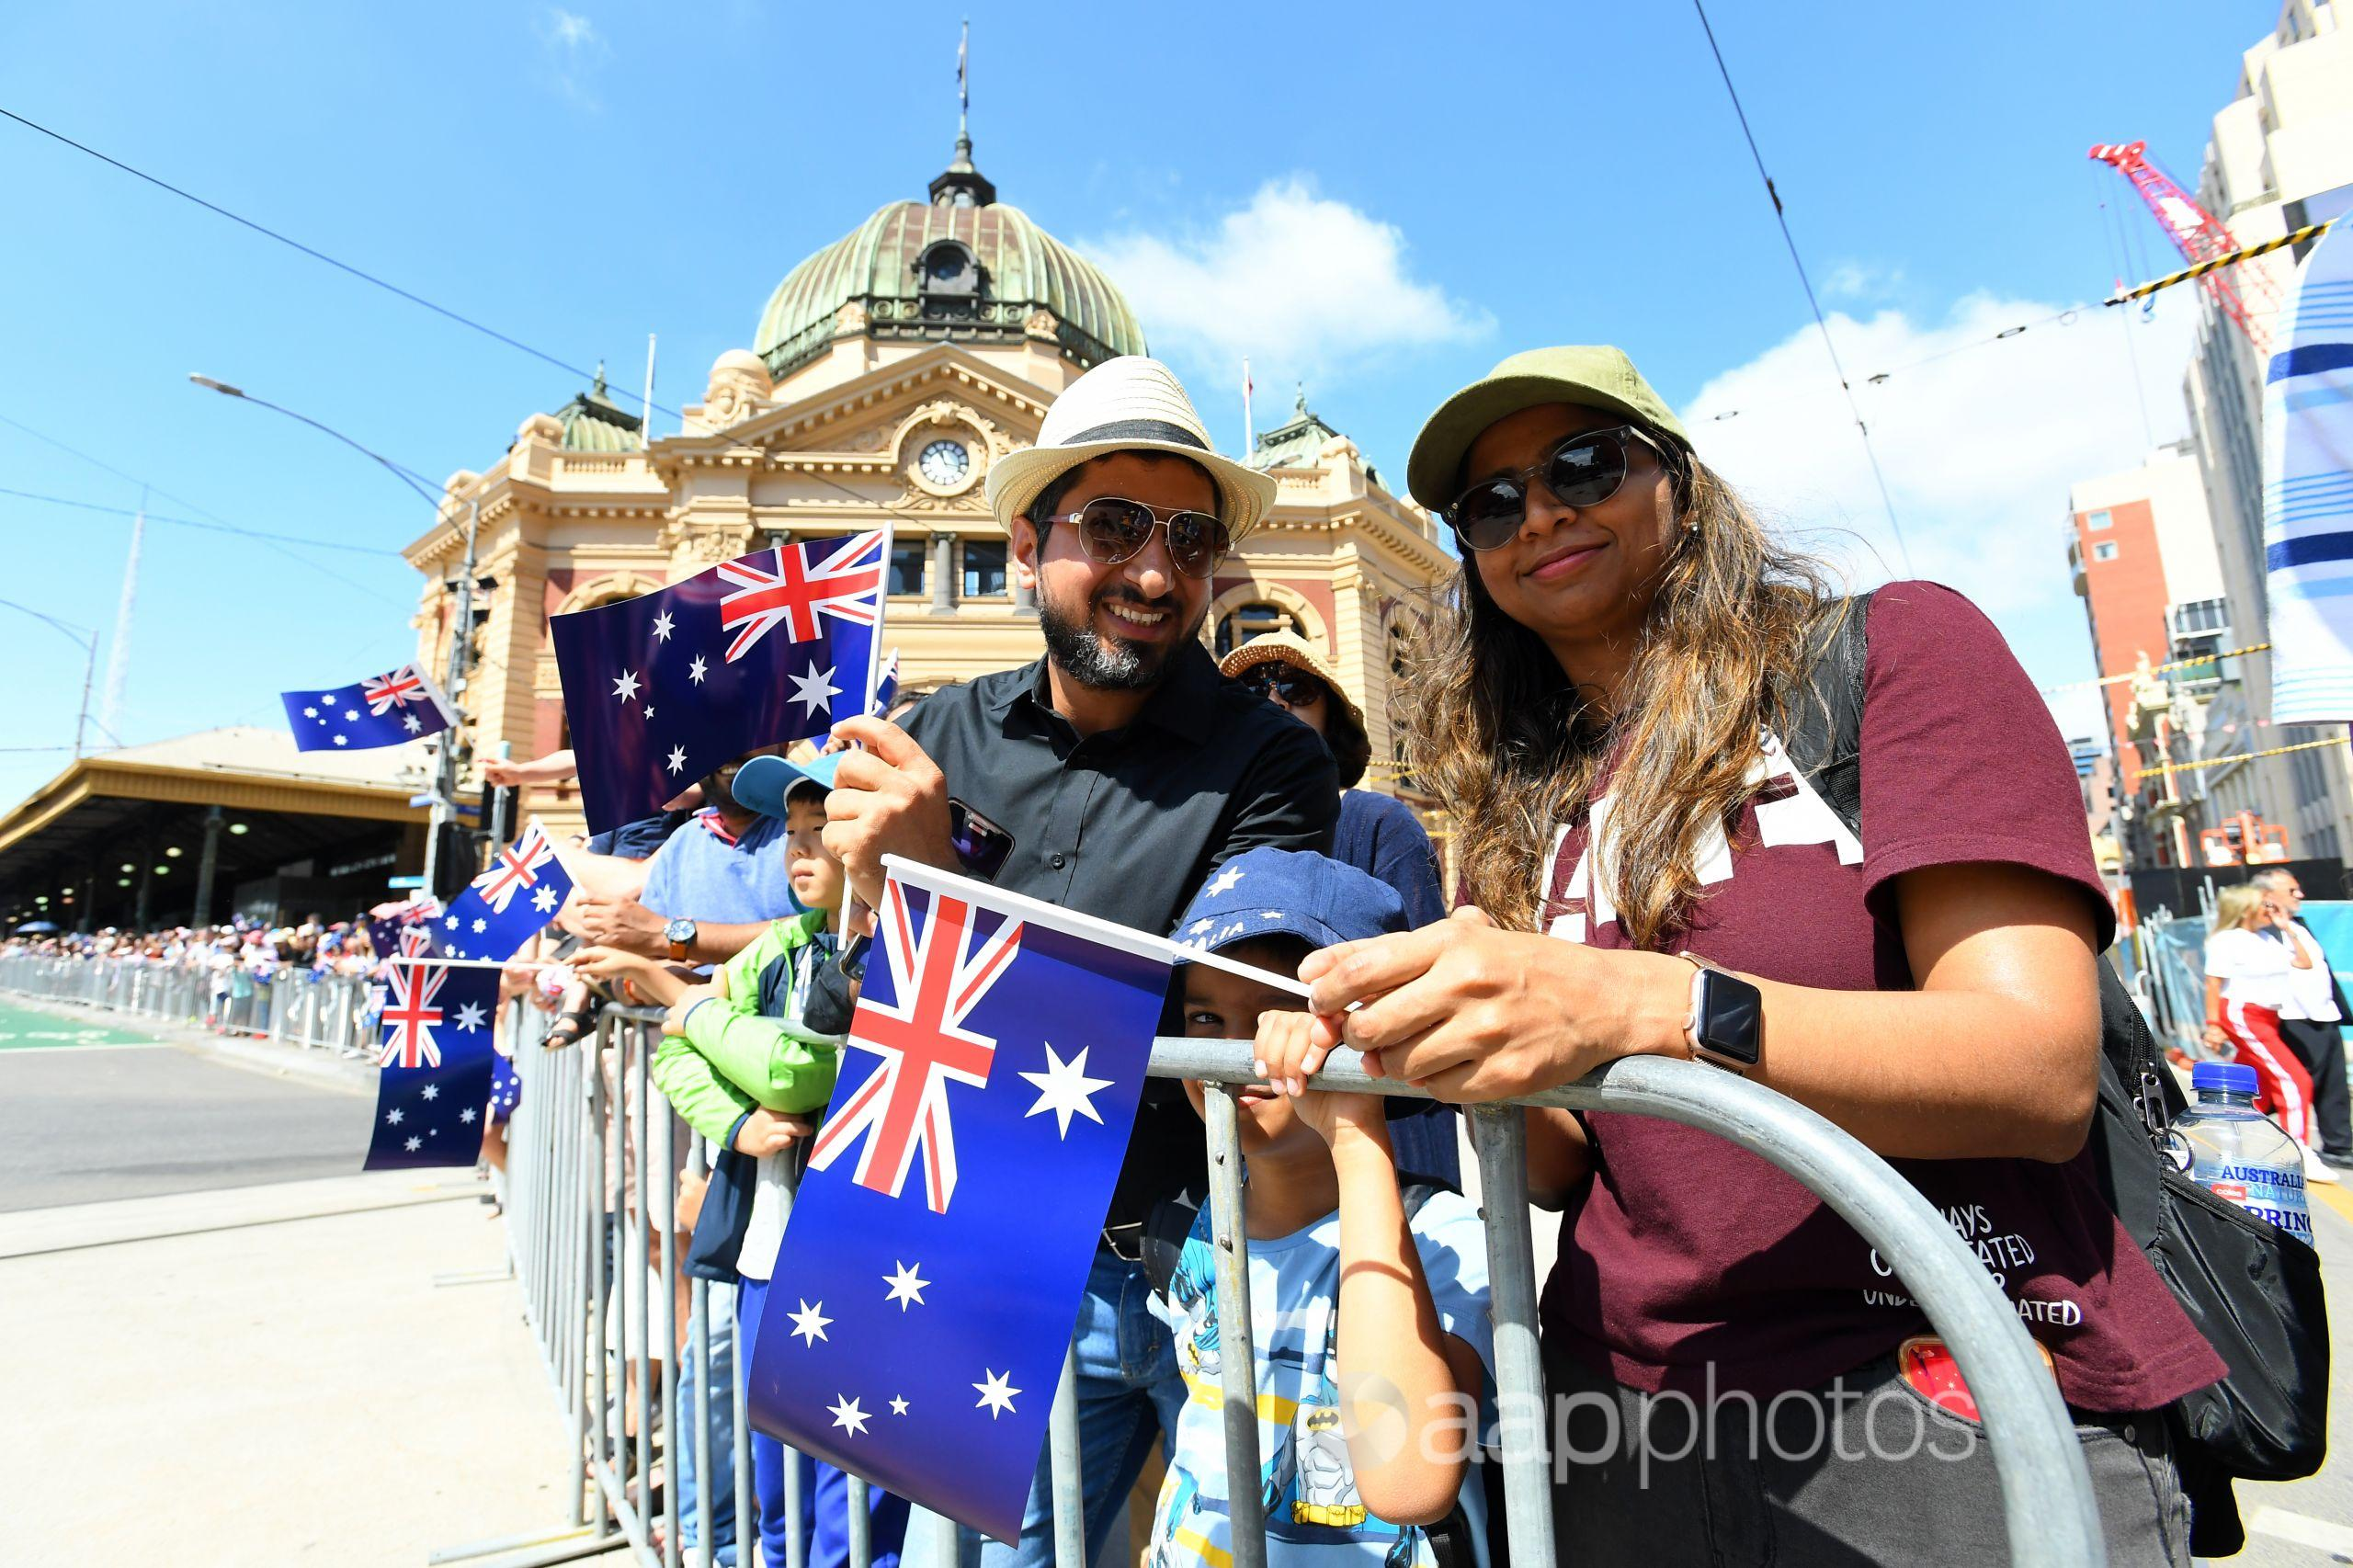 The Australia Day parade celebrations in Melbourne